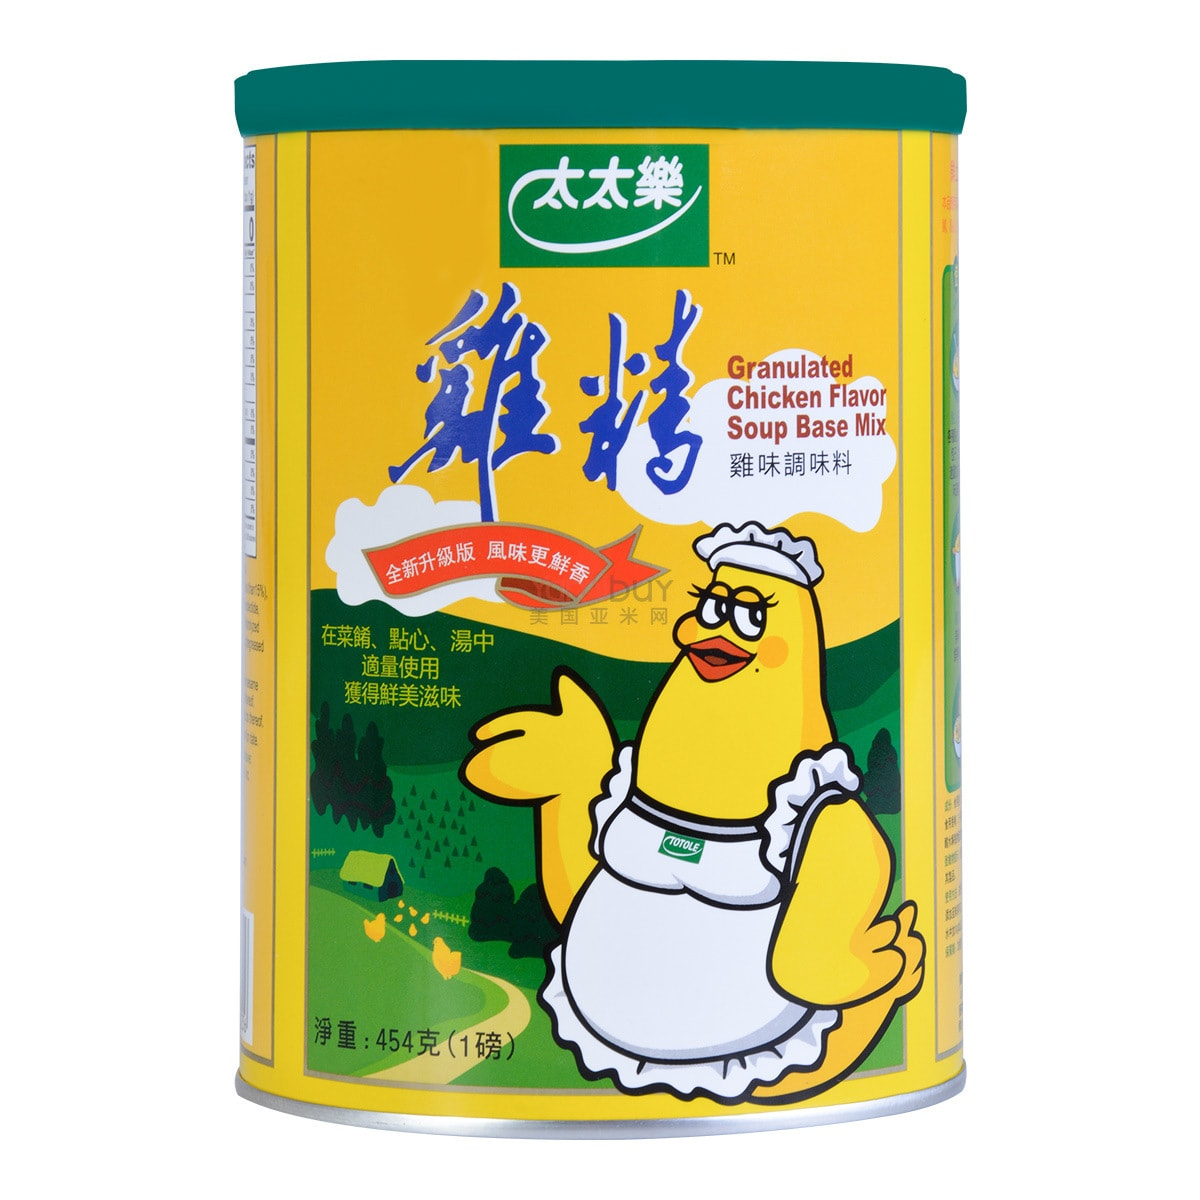 TOTOLE Granulated Chicken Flavor Soup Base Mix 454g